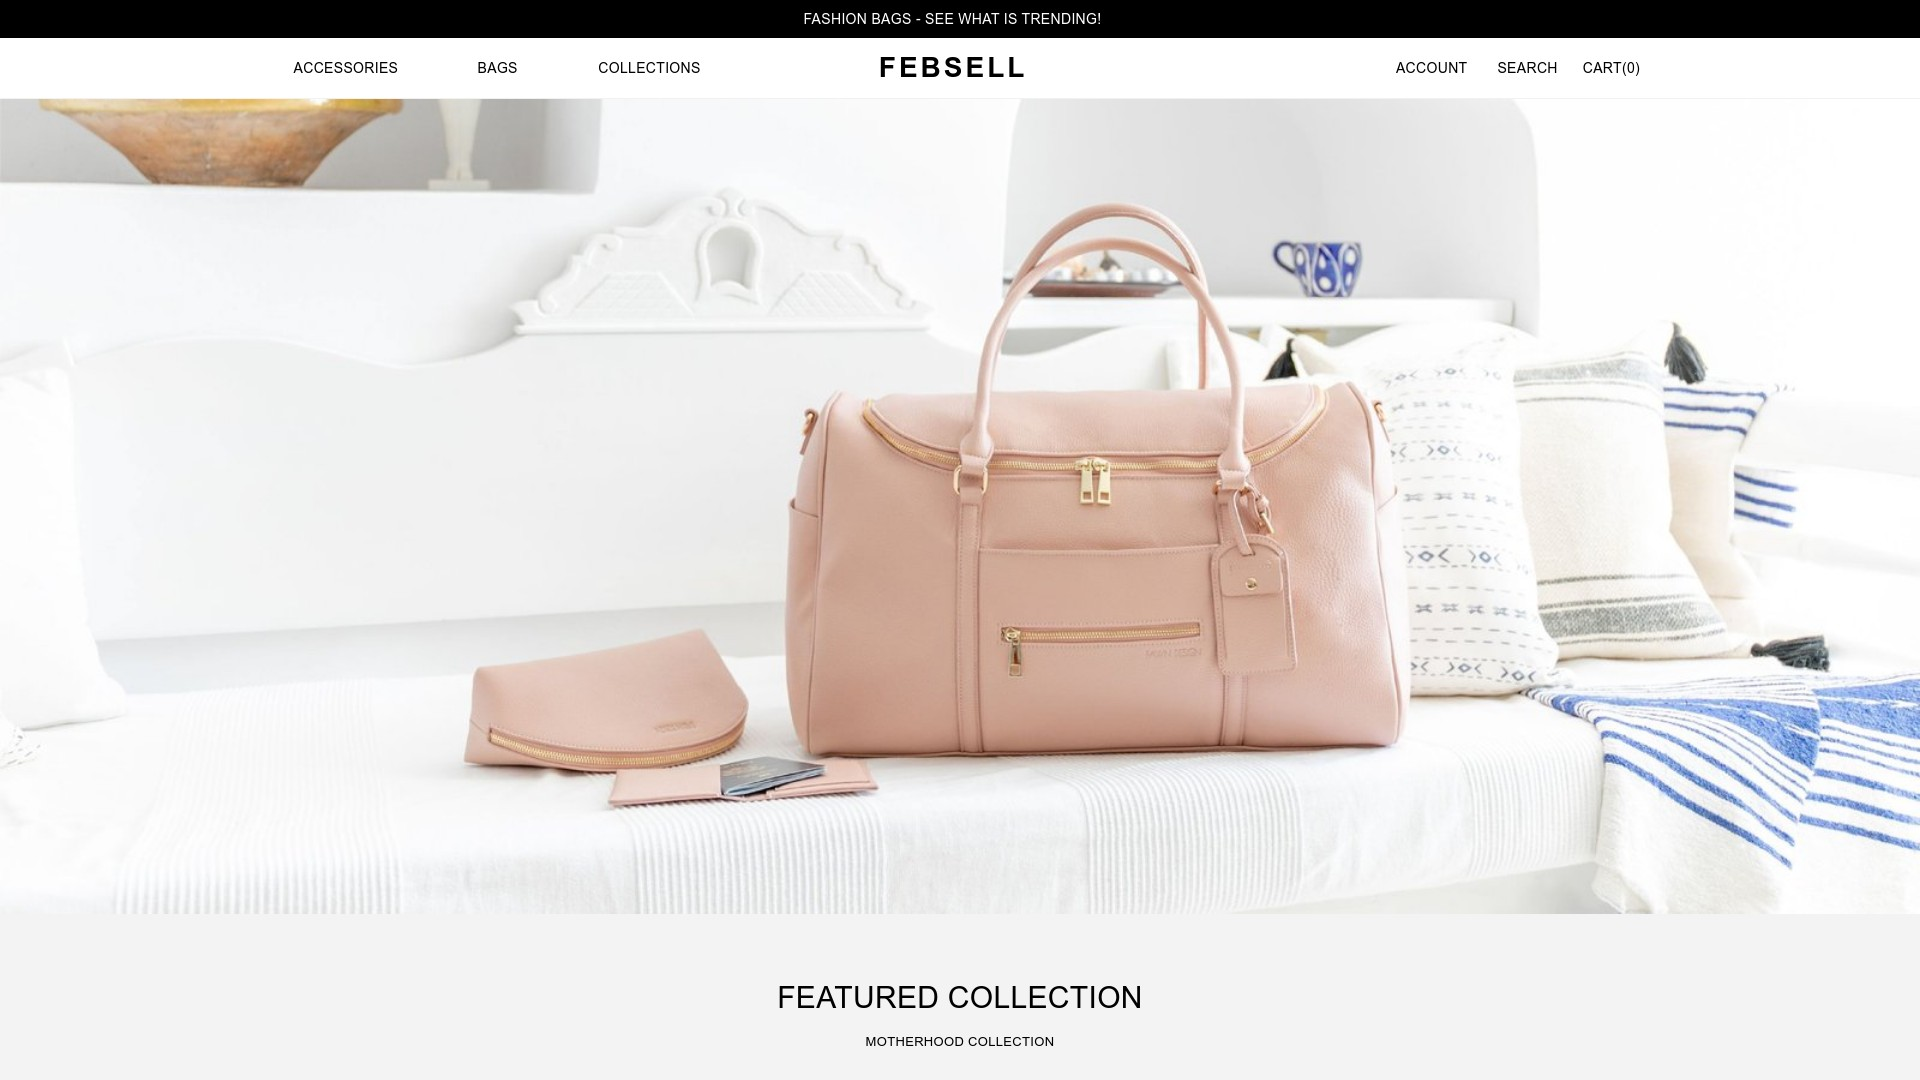 Is Febsell a Scam or is it Legit? Review of the Online Store